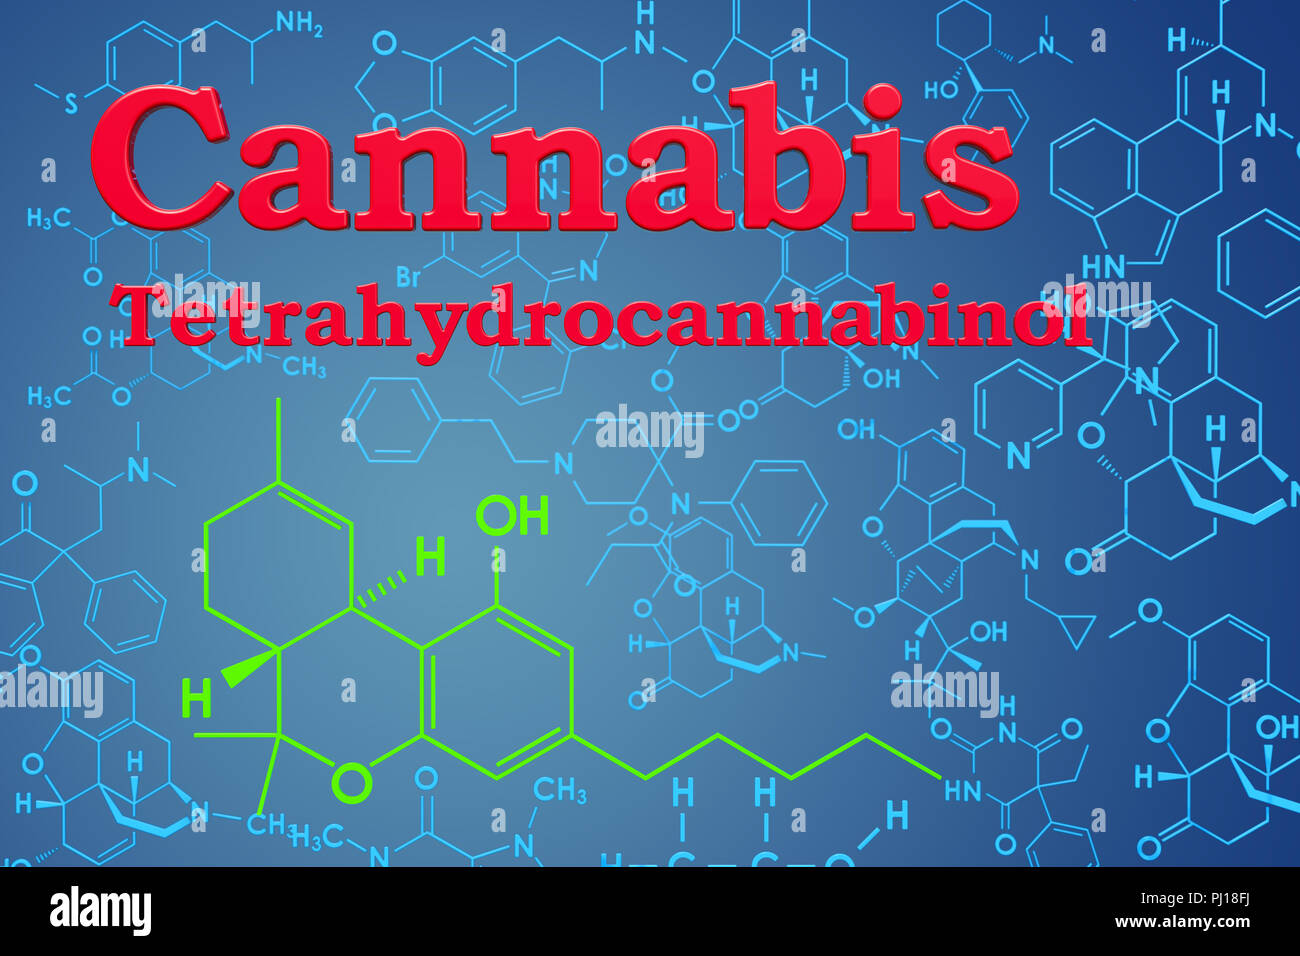 Cannabis, marijuana or tetrahydrocannabinol. Chemical formula, molecular structure. 3D rendering Stock Photo